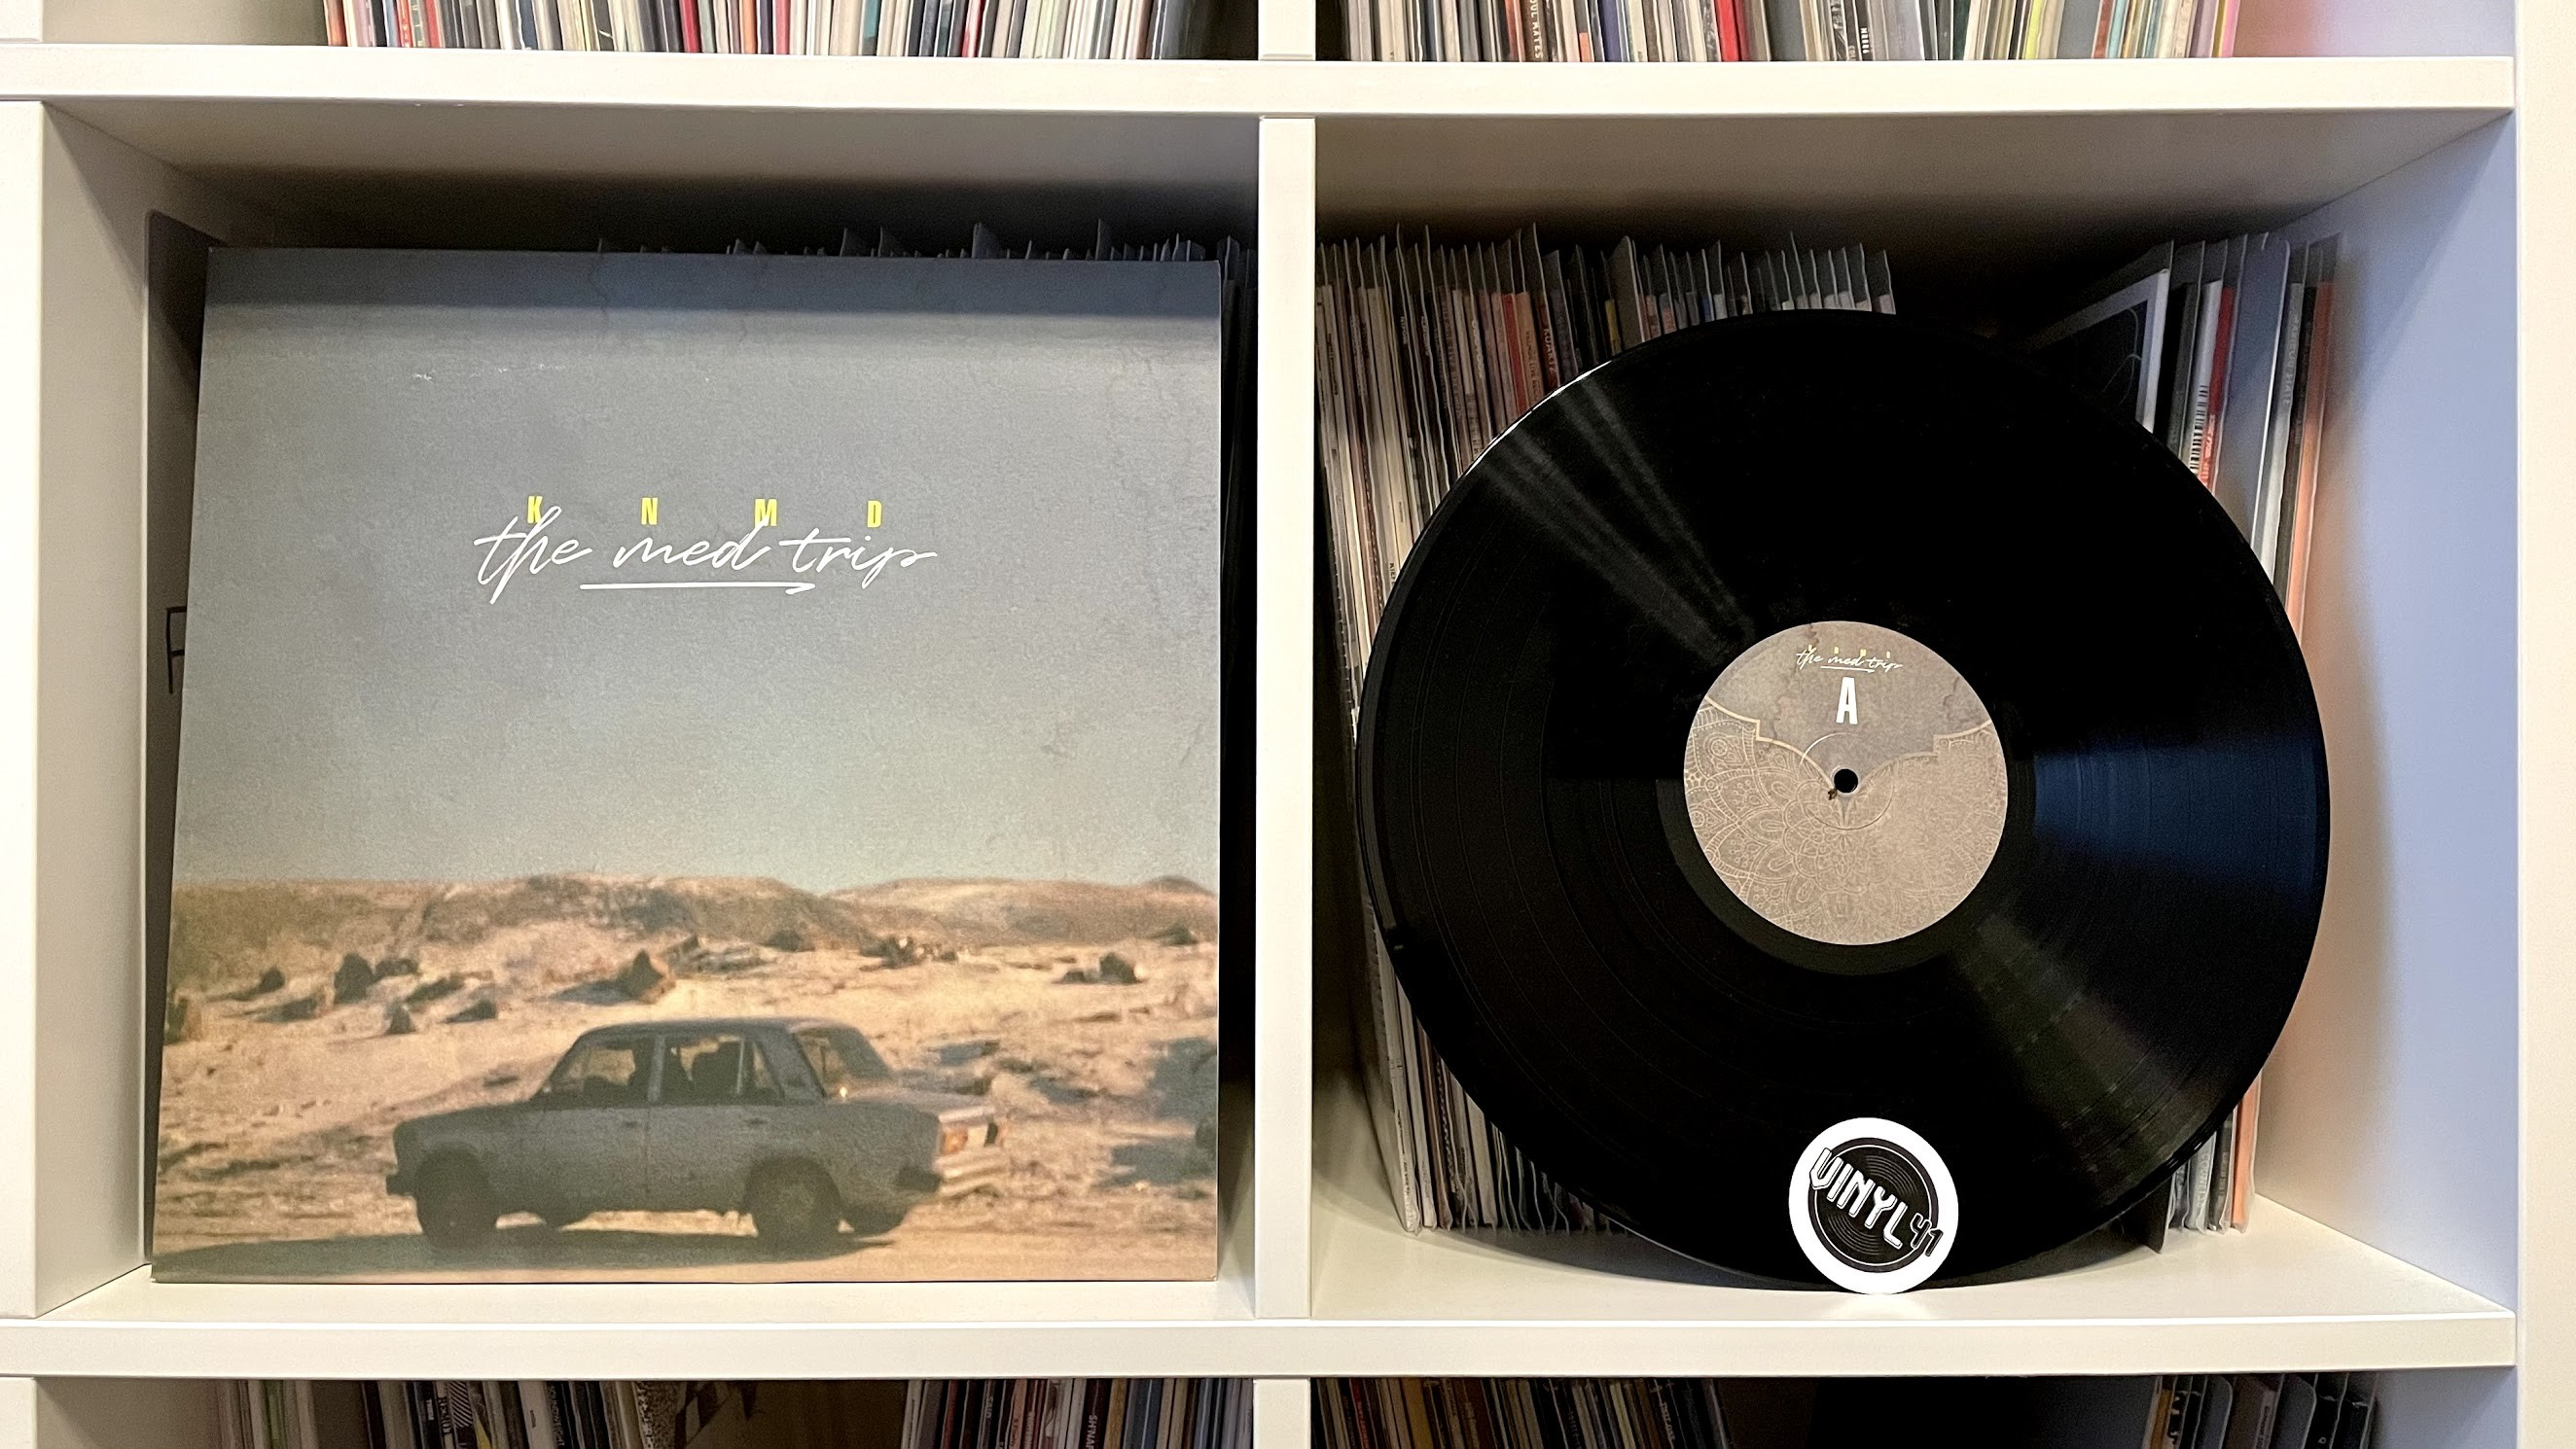 KNMD - The Med Trip LP (Albatros Music)